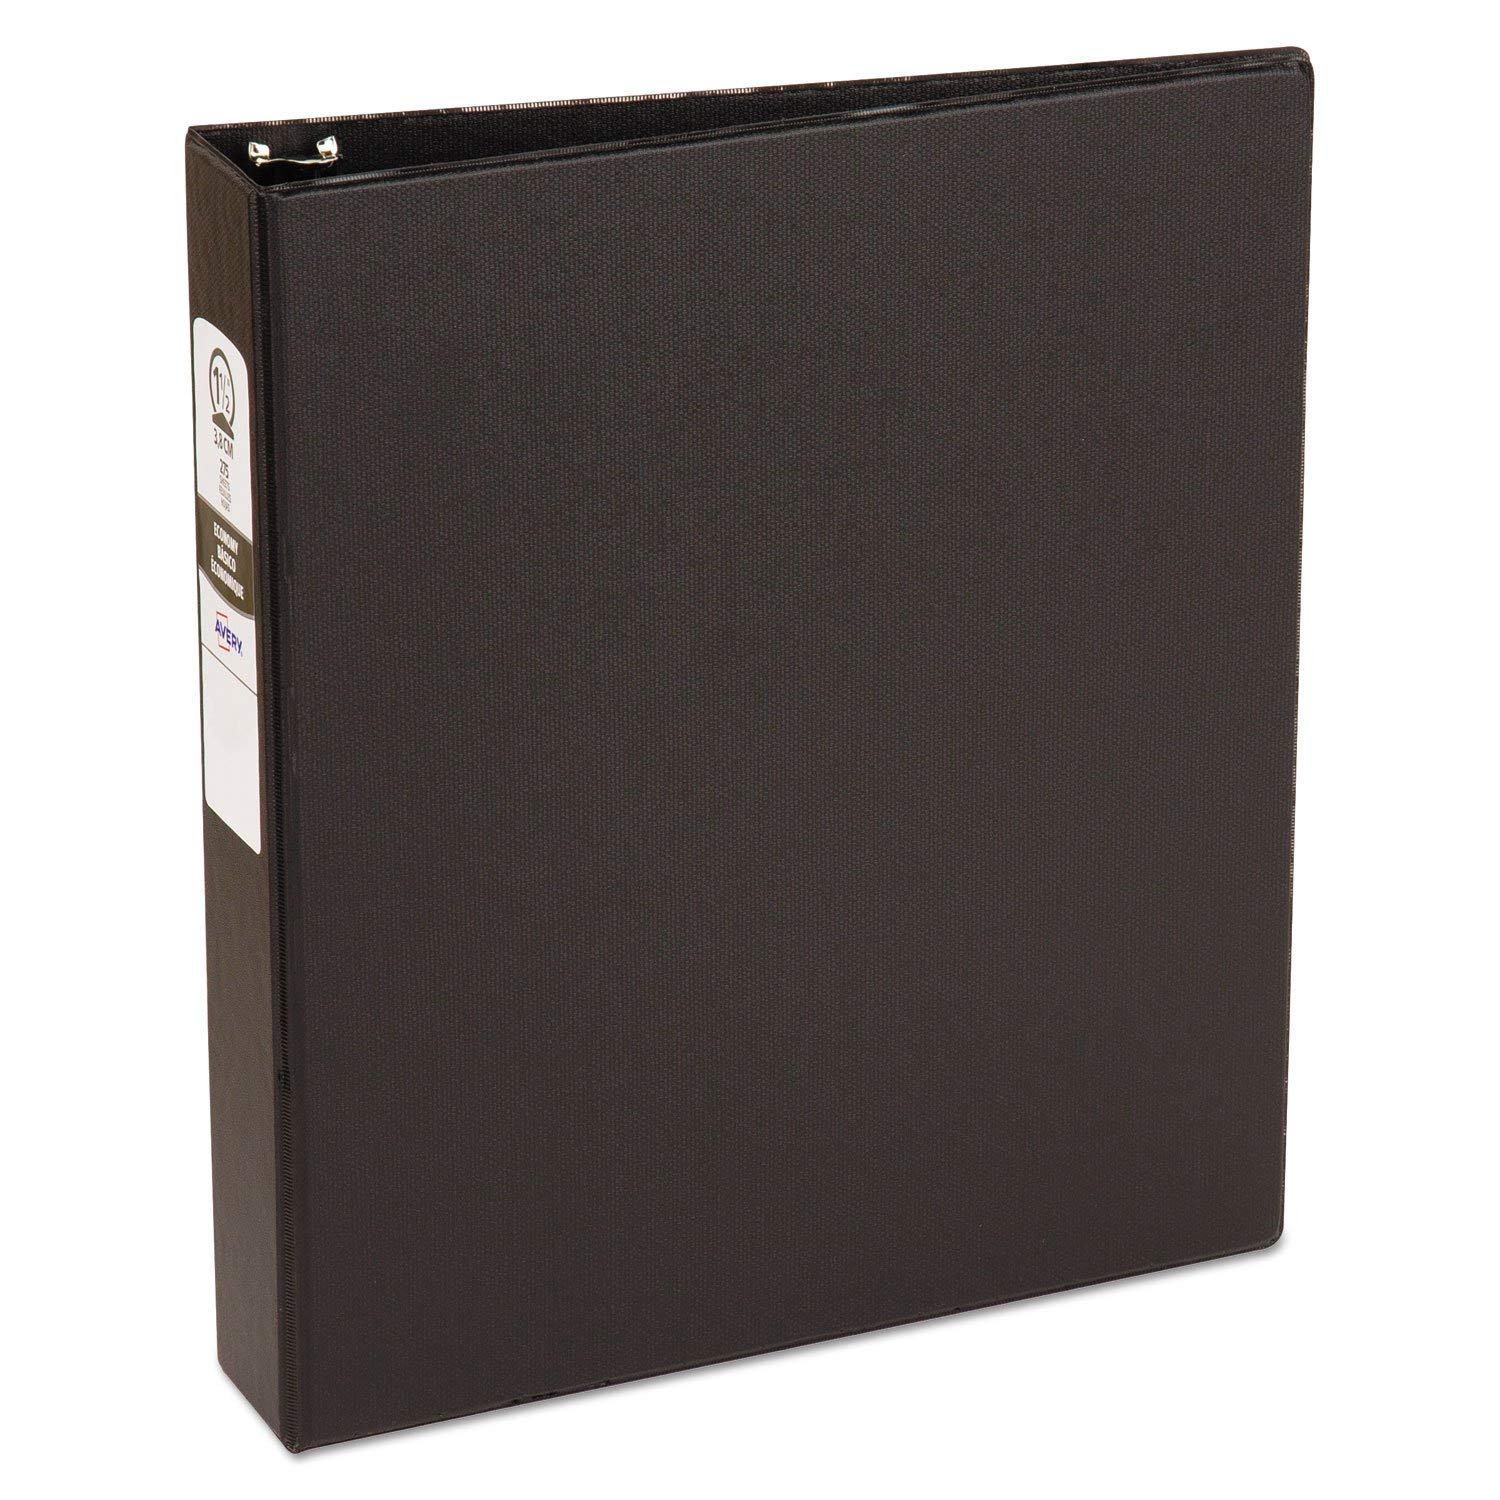 """Economy Non-View Binder with Round Rings, 11 X 8 1/2, 1 1/2"""""""" Capacity, Black"""